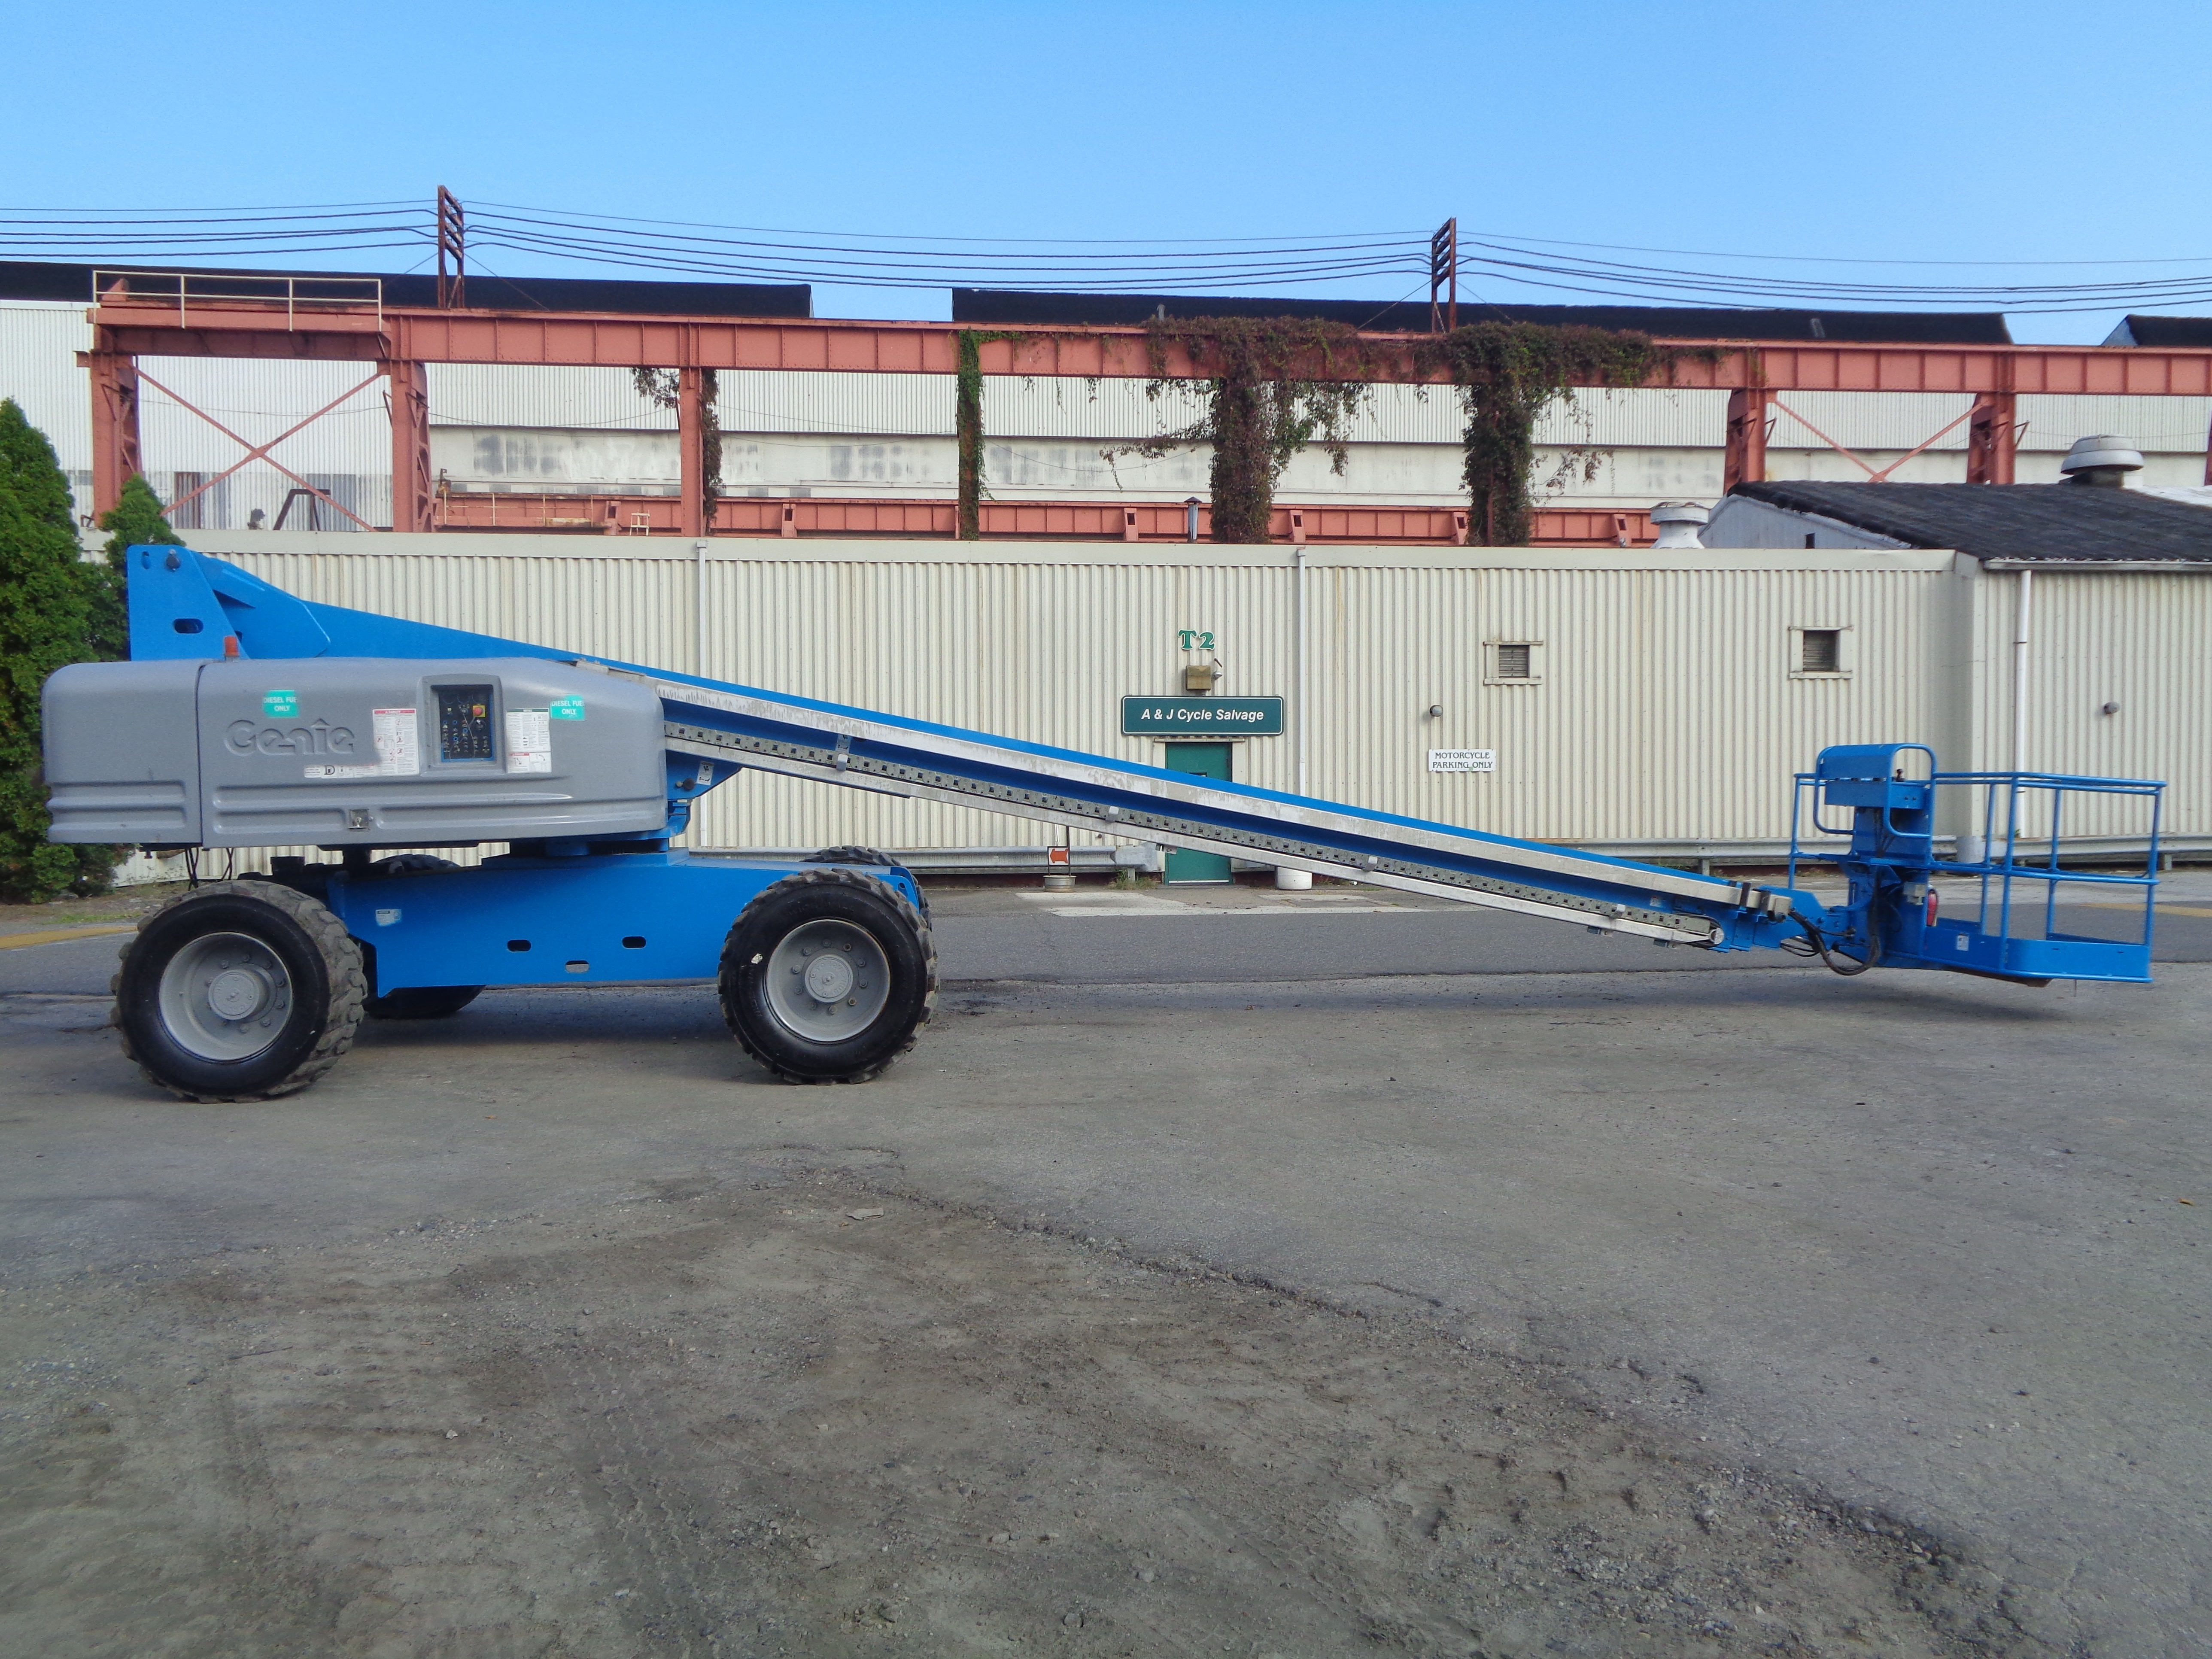 Genie S80 80ft Boom Lift - Image 9 of 22